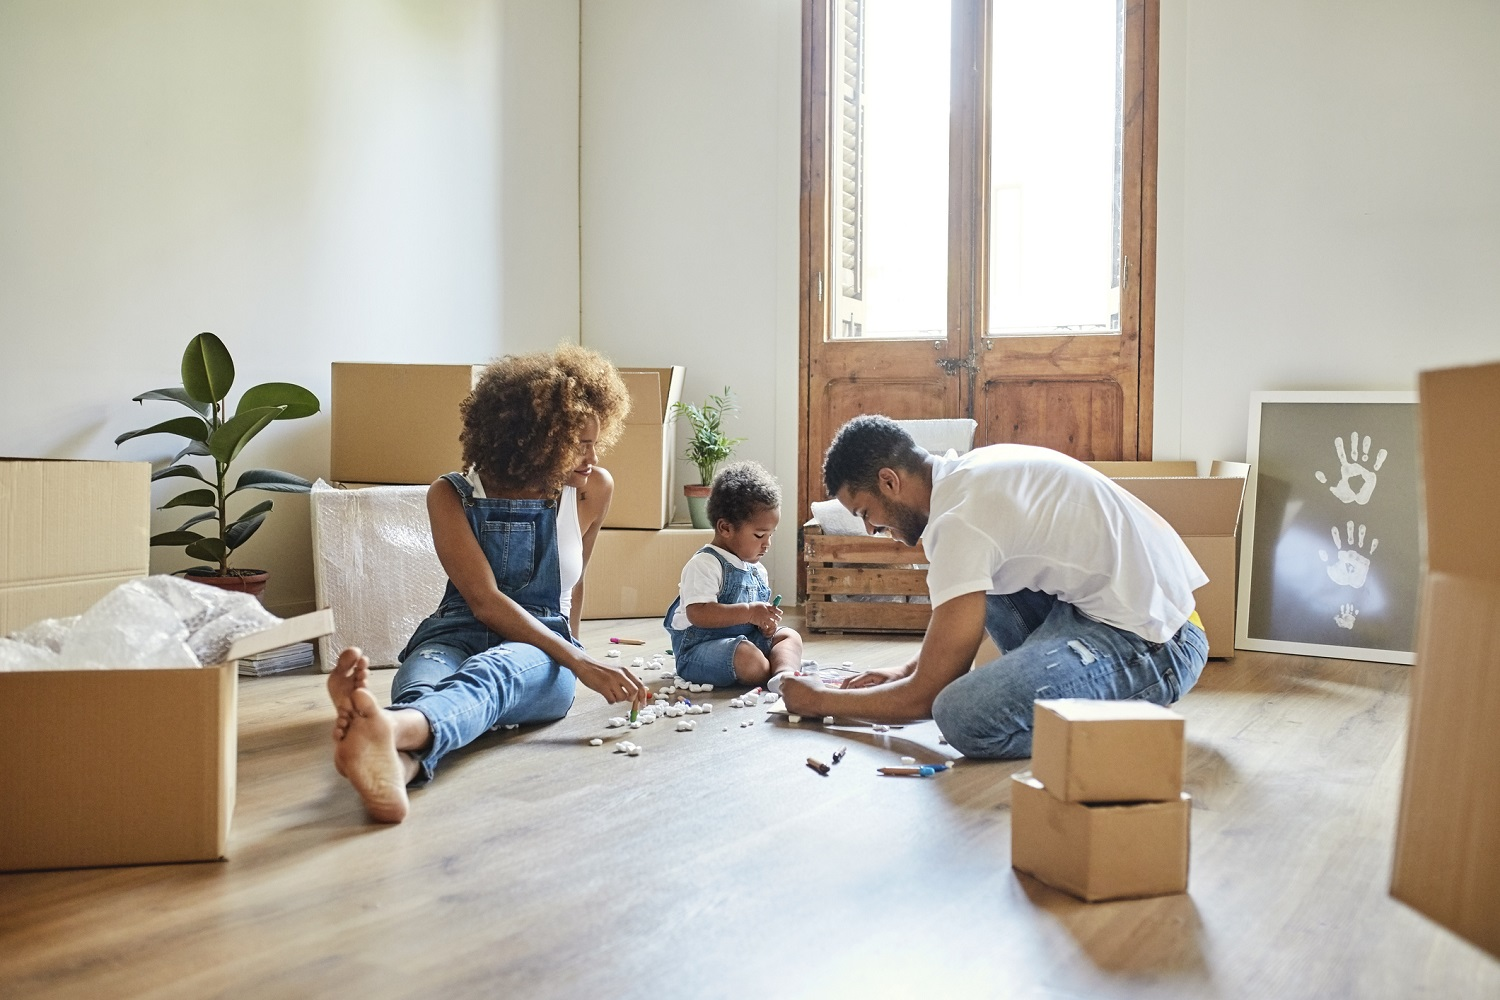 mom and dad with young child playing with small toys in the center of a room filled with moving boxes